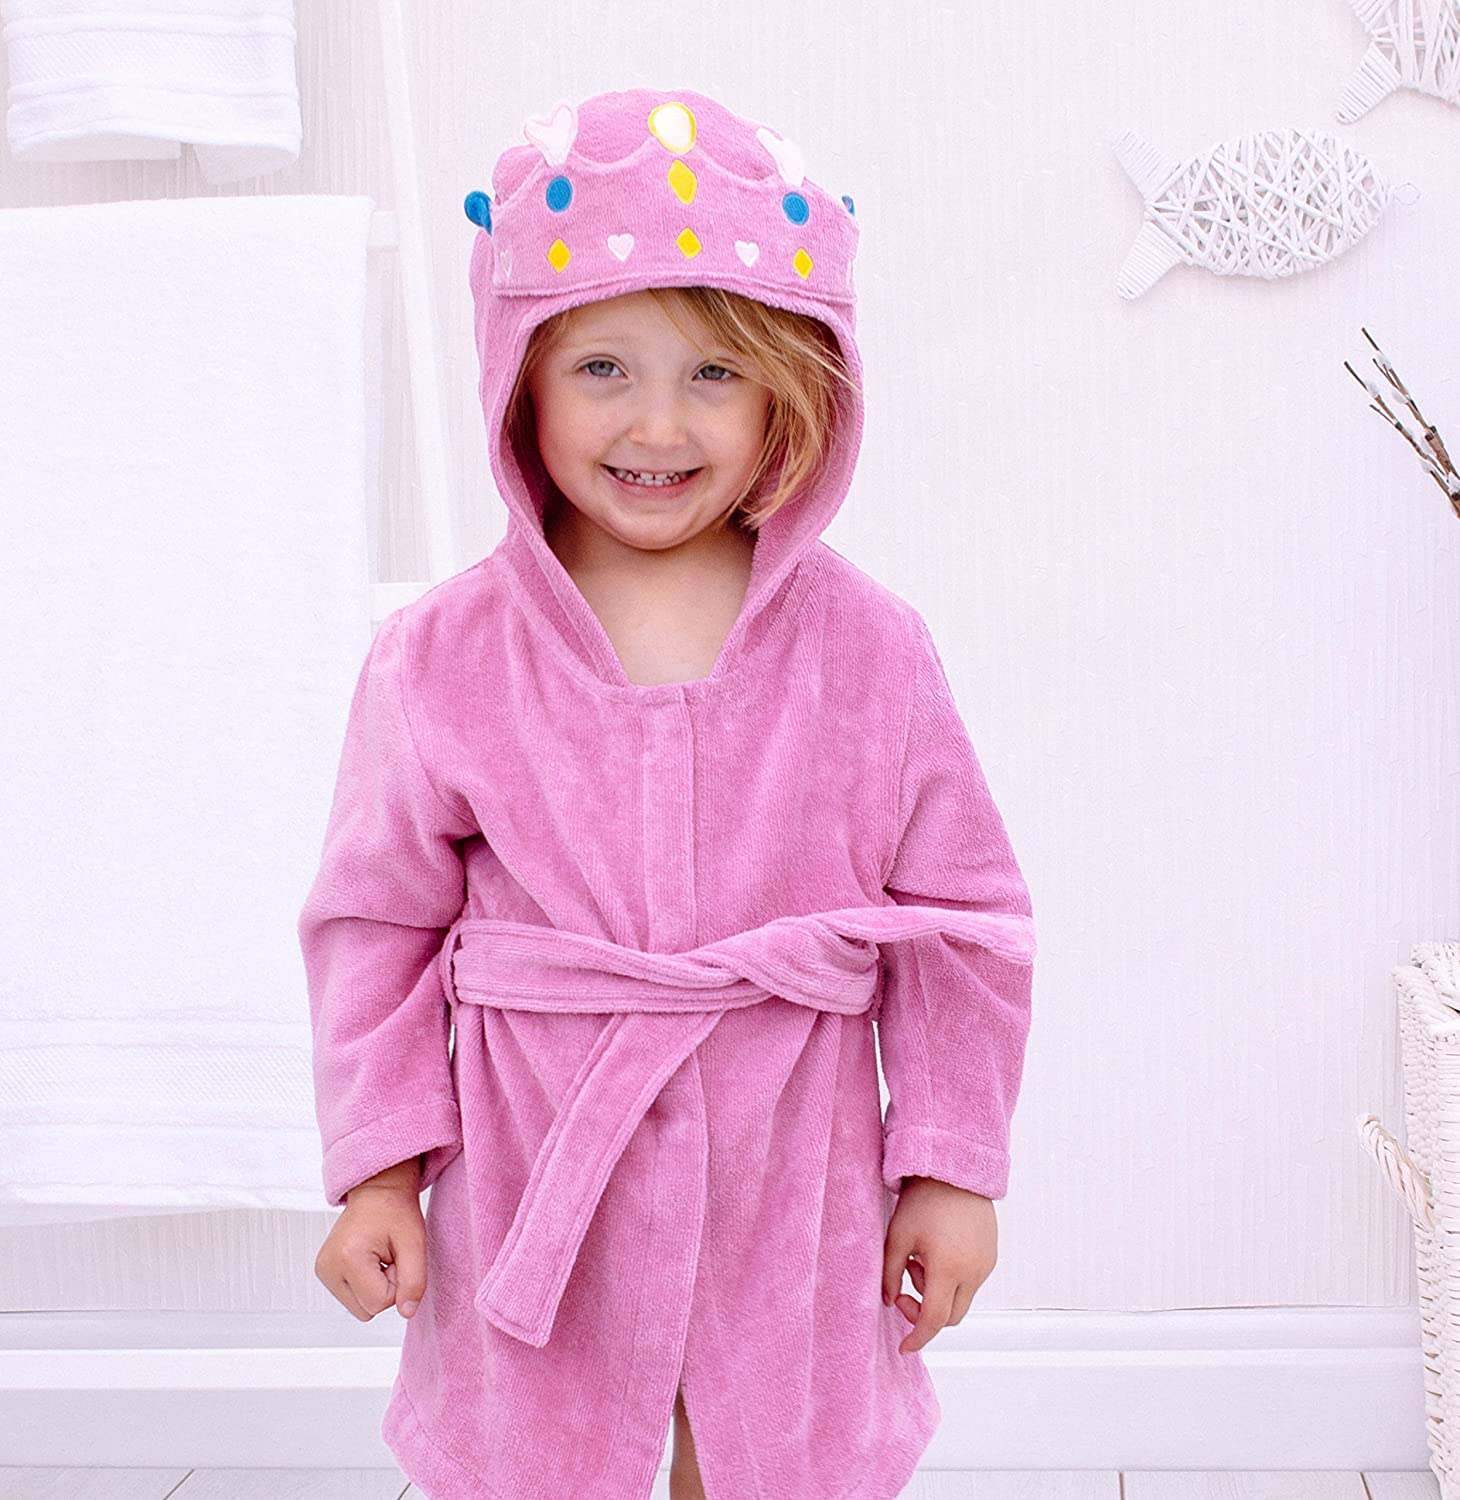 Bathing Bunnies Hooded Princess Bath Robe Cotton for 1-3 Year Old Surrey AT Company Ltd 760446PTR